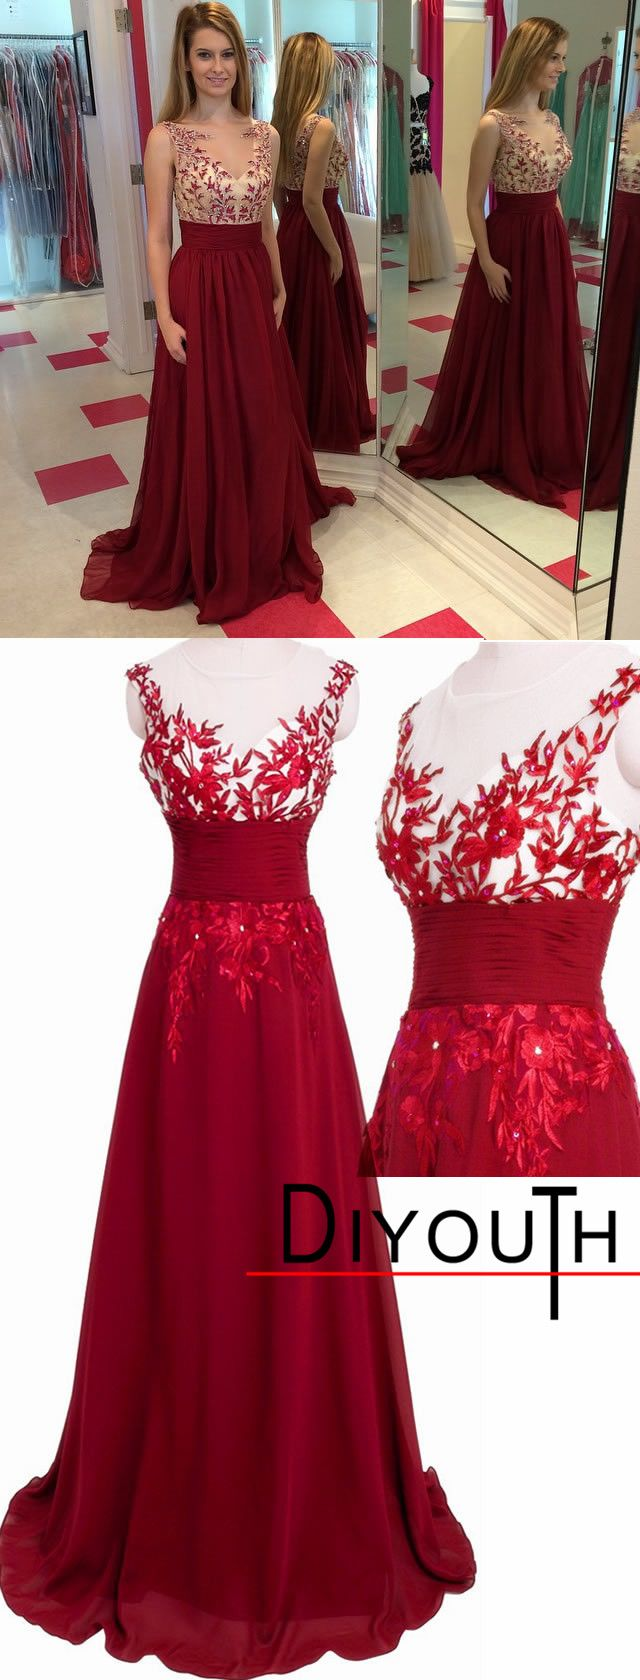 Full-length Red Chiffon Illusion Neck Floral Evening Prom Dress,red evening dresses,lace prom dress,open back cocktail dresses,formal dresses